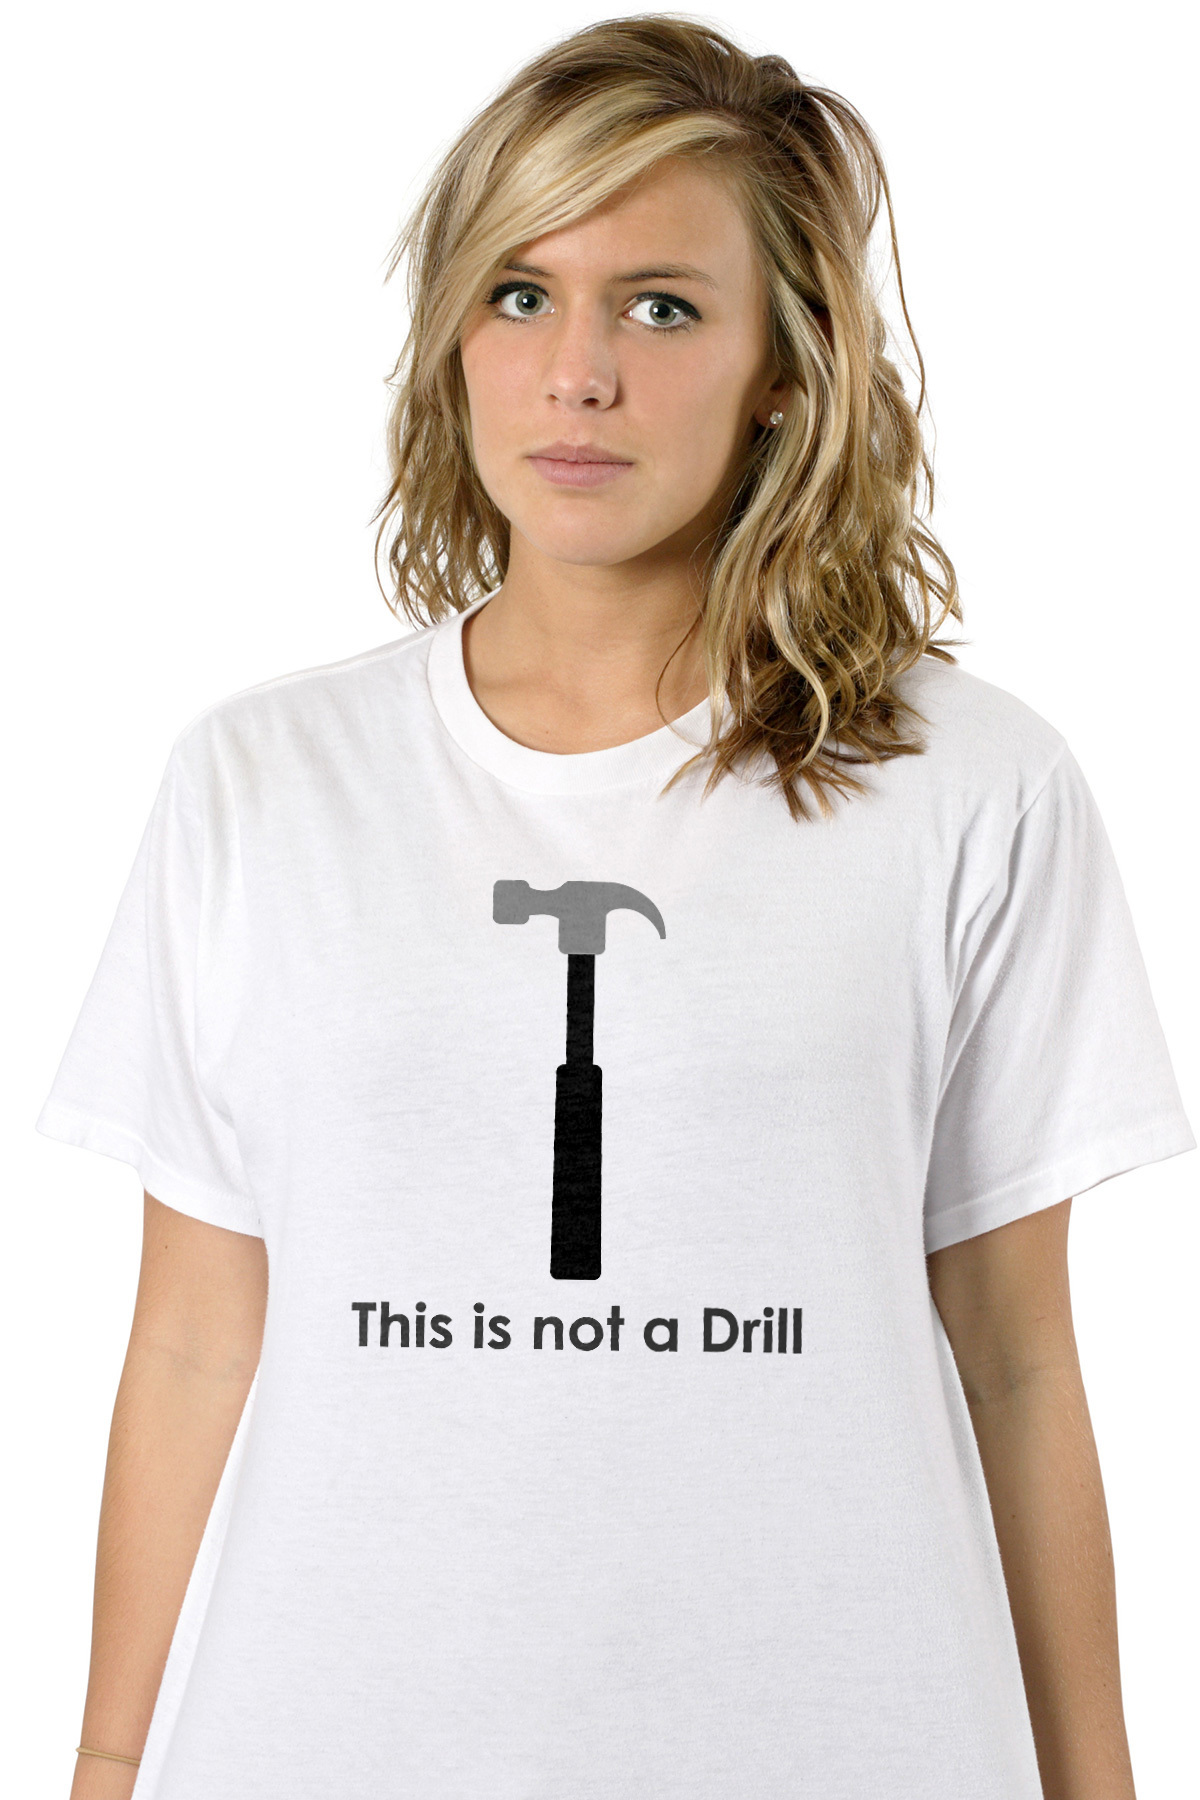 4280e7015 This is not a drill - Funny T-Shirt shirt